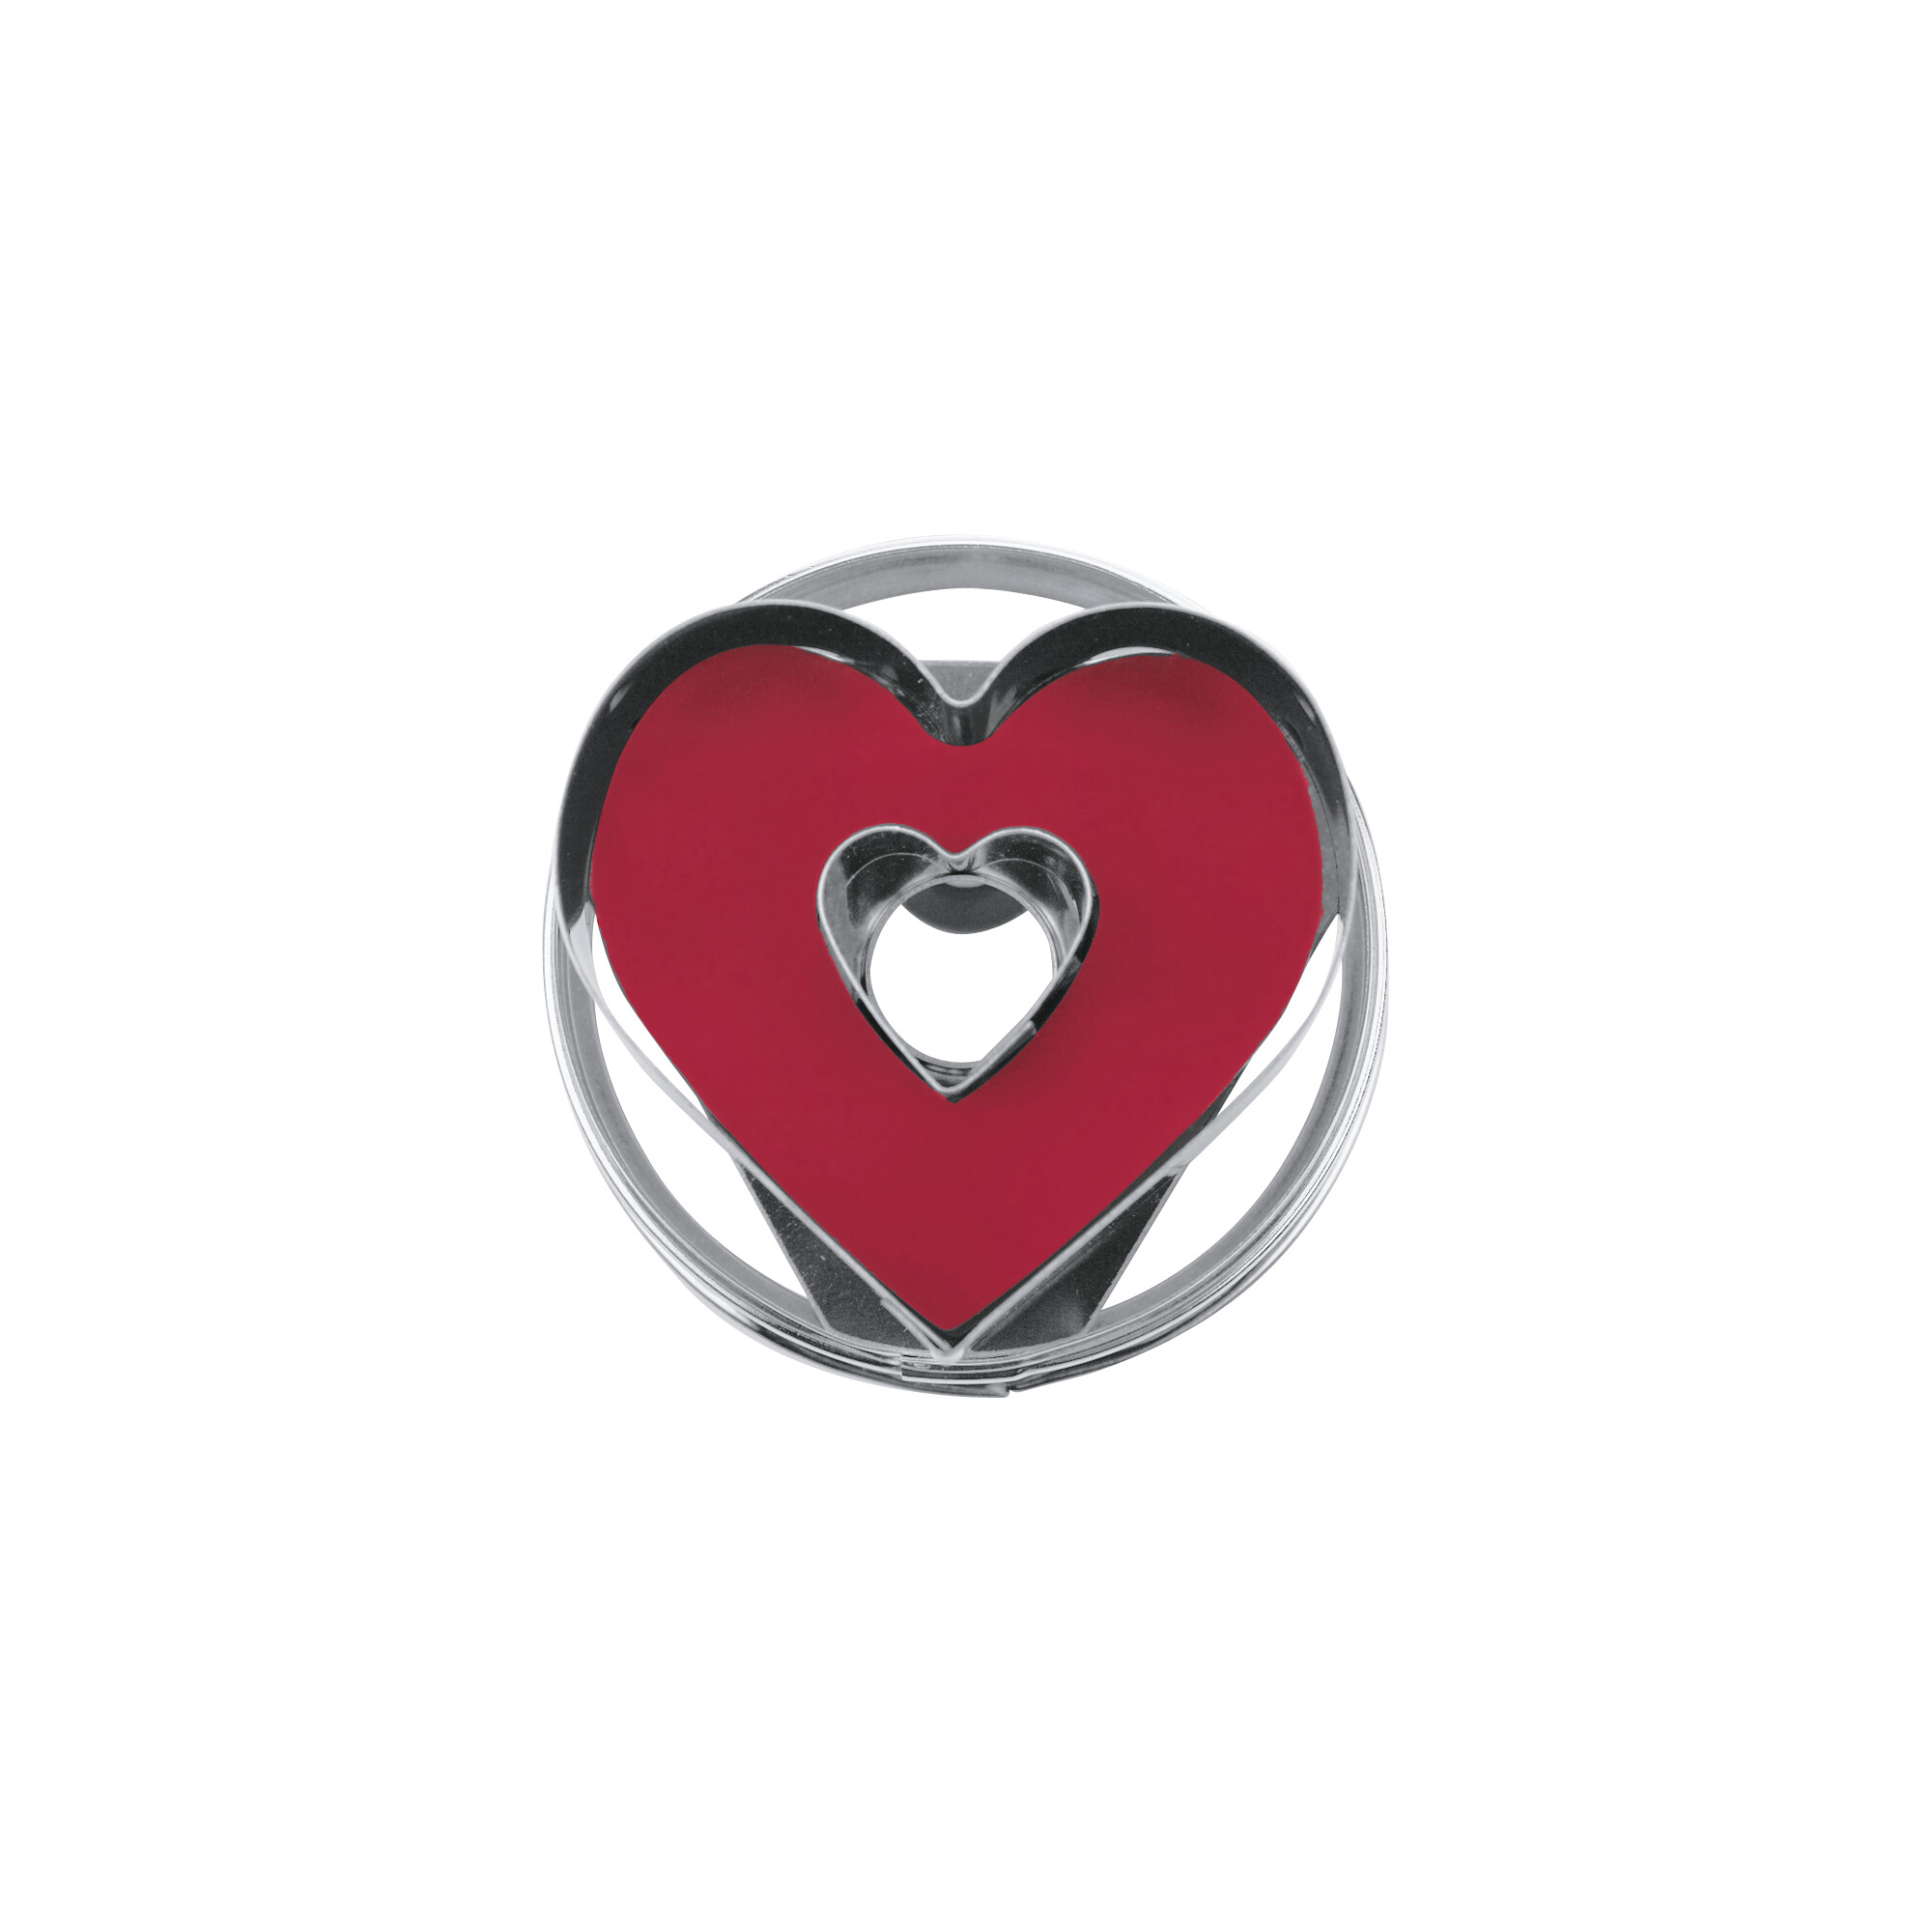 Linzer cookie cutter with ejector - Heart with inside heart - demountable